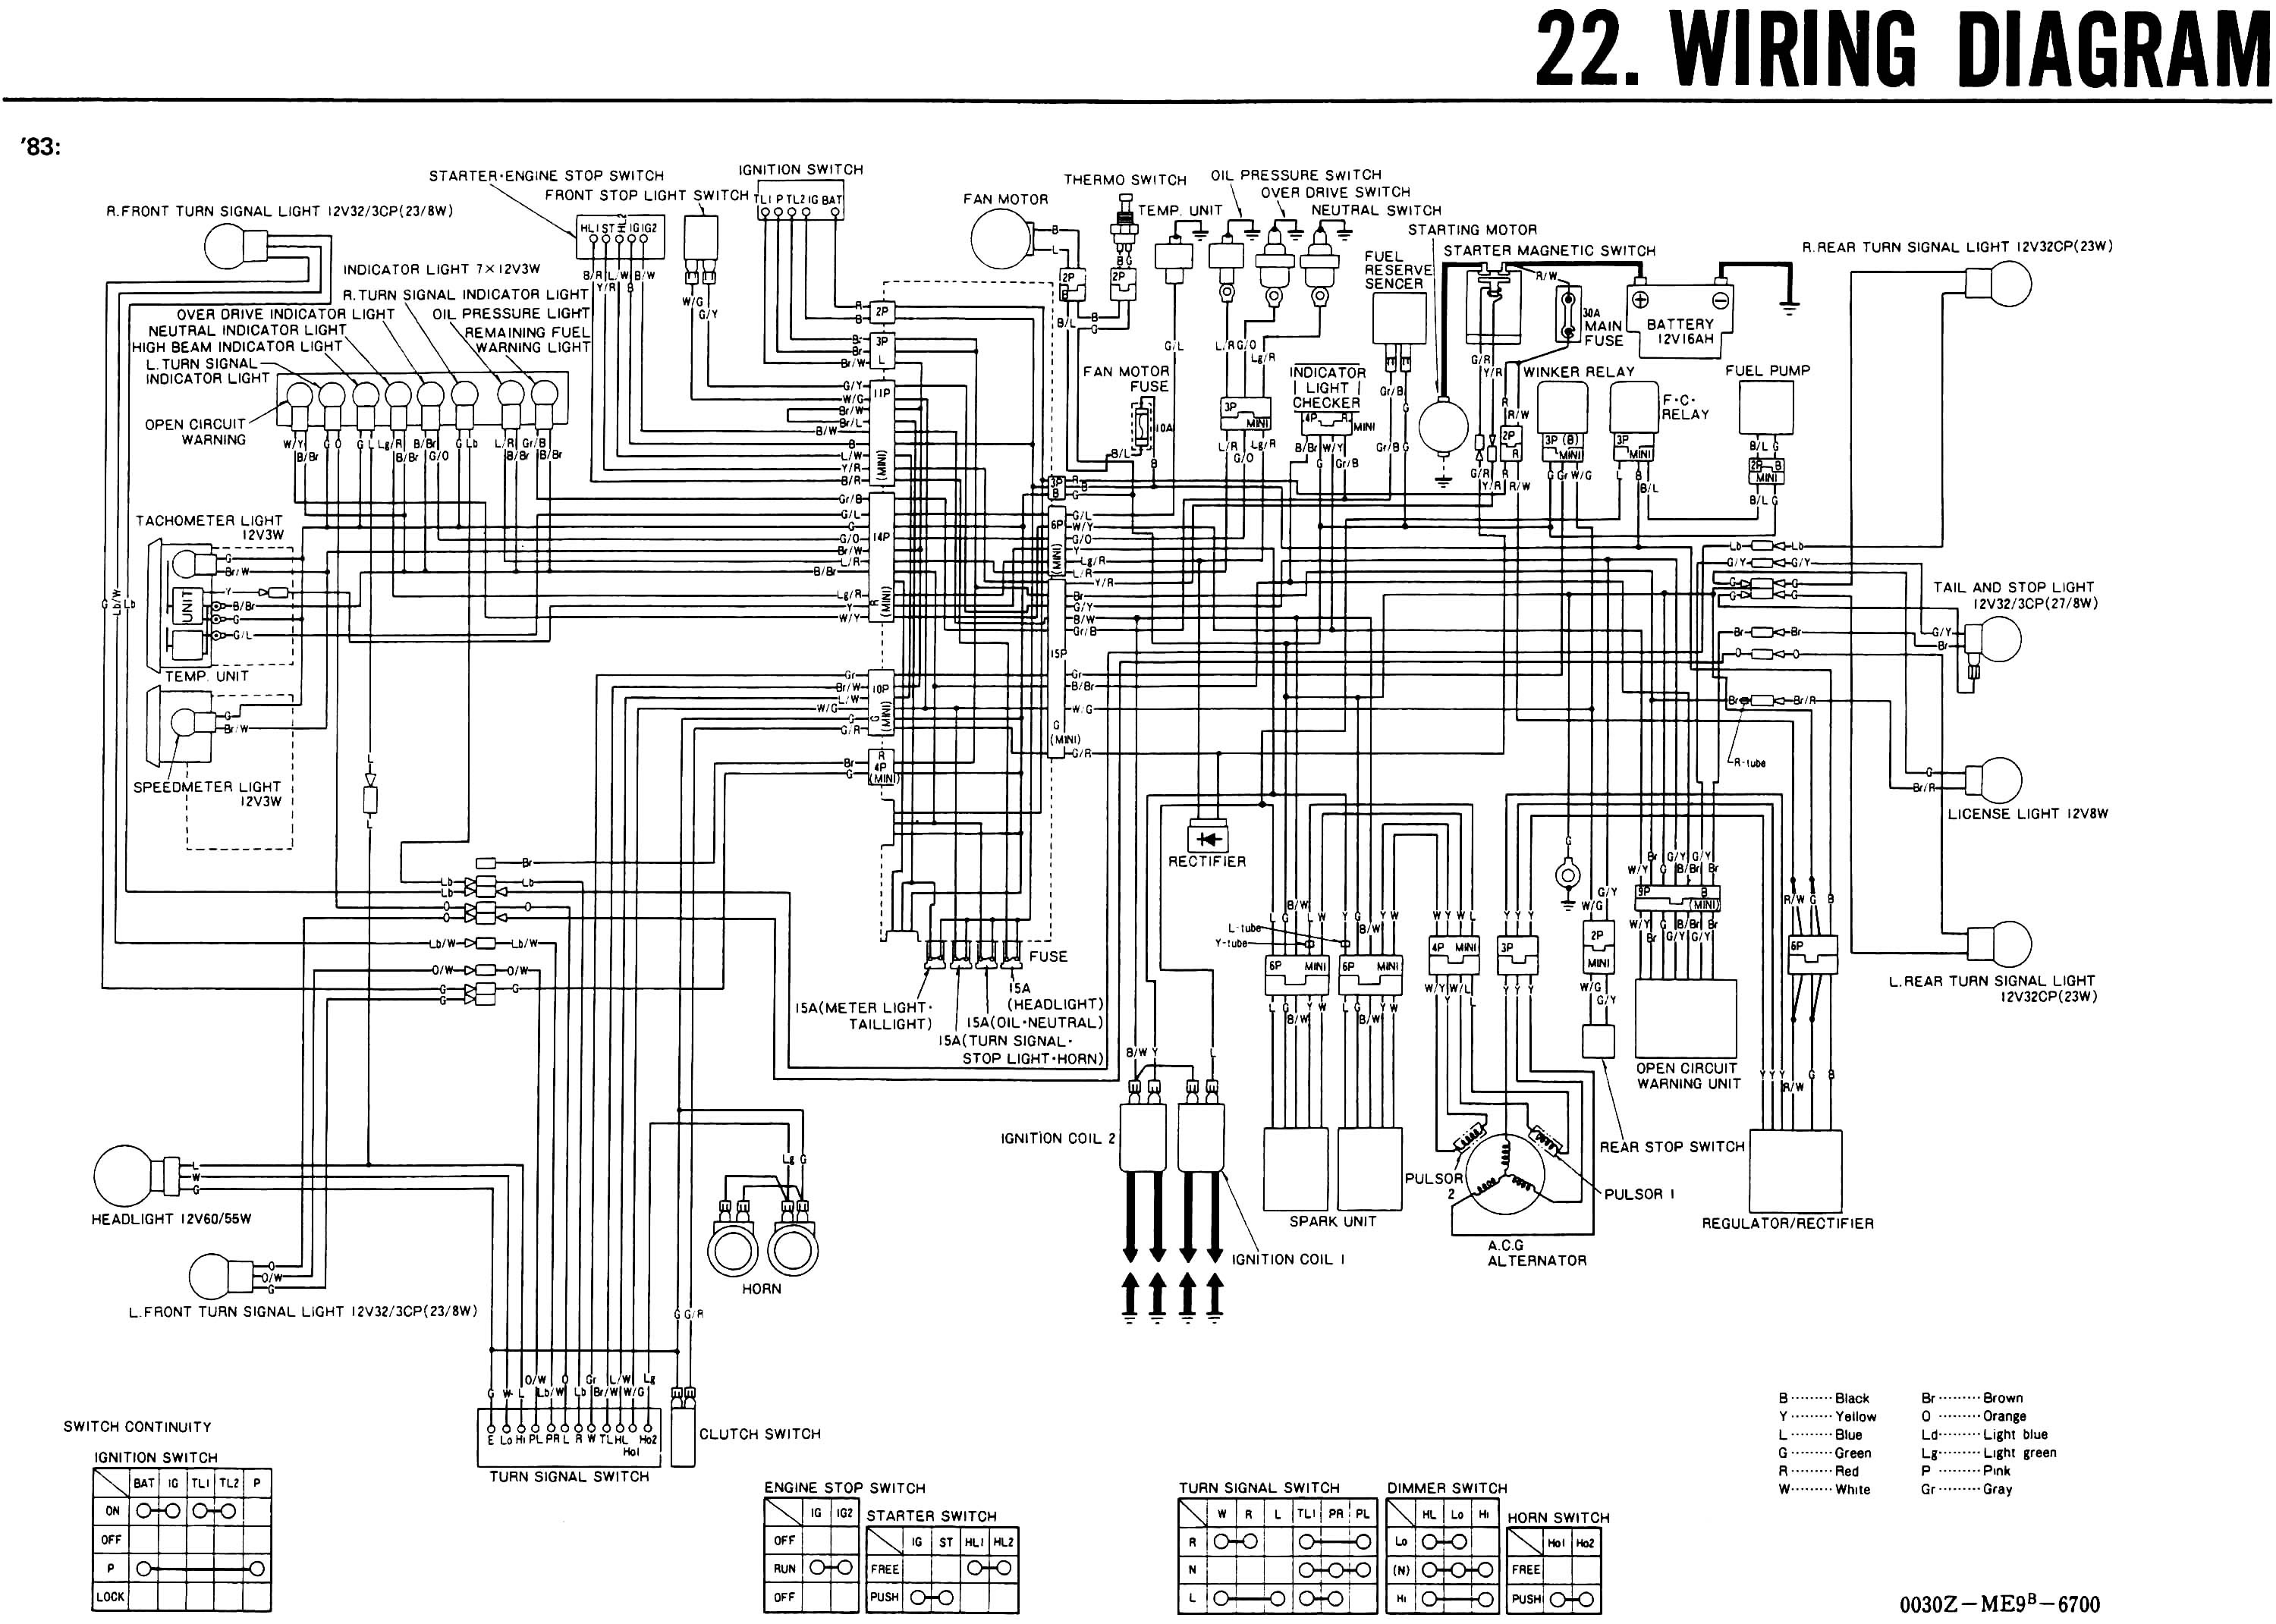 wiring diagram honda shadow vt1100